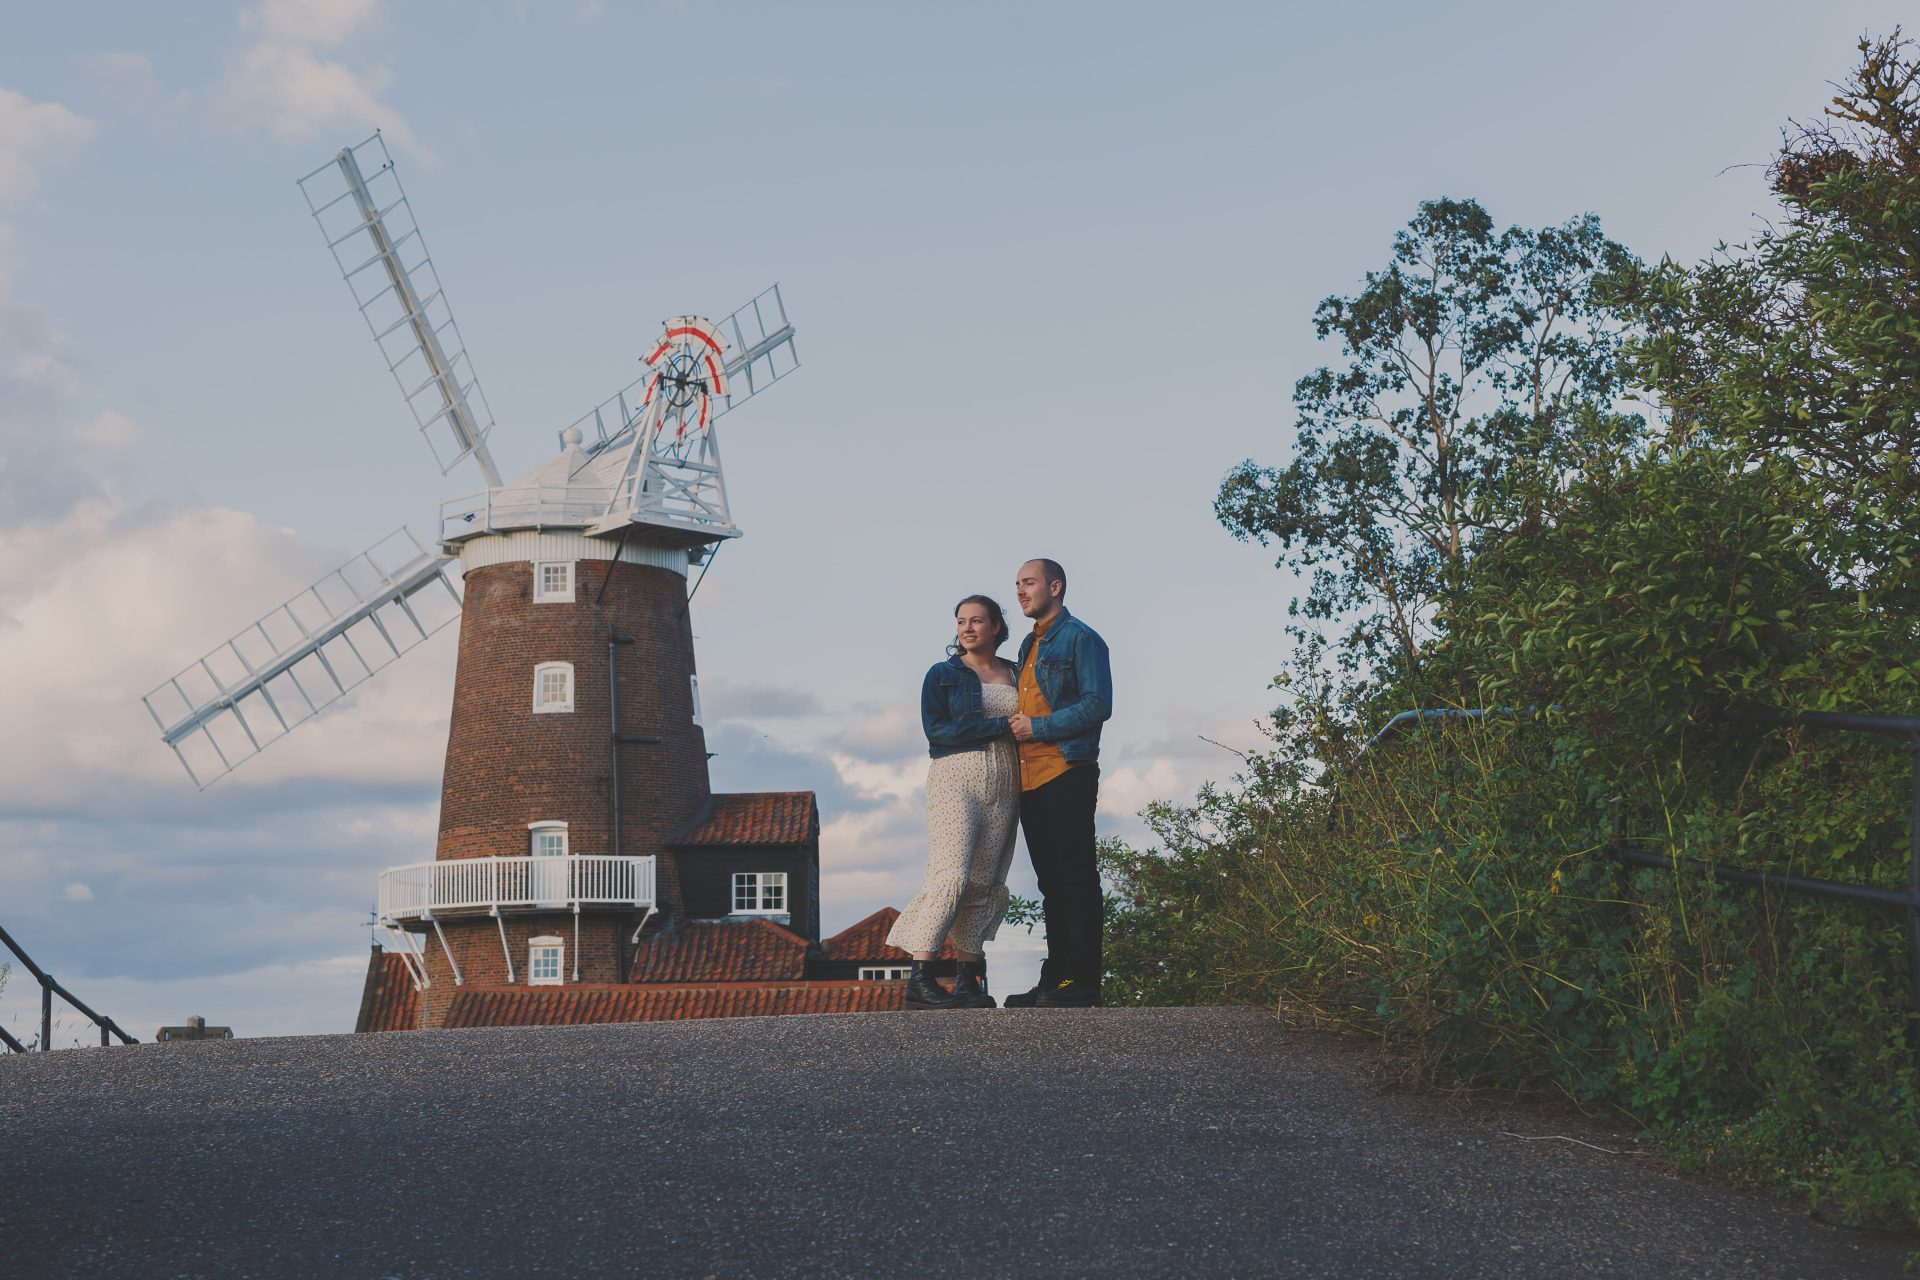 engagement photography by neil senior photography